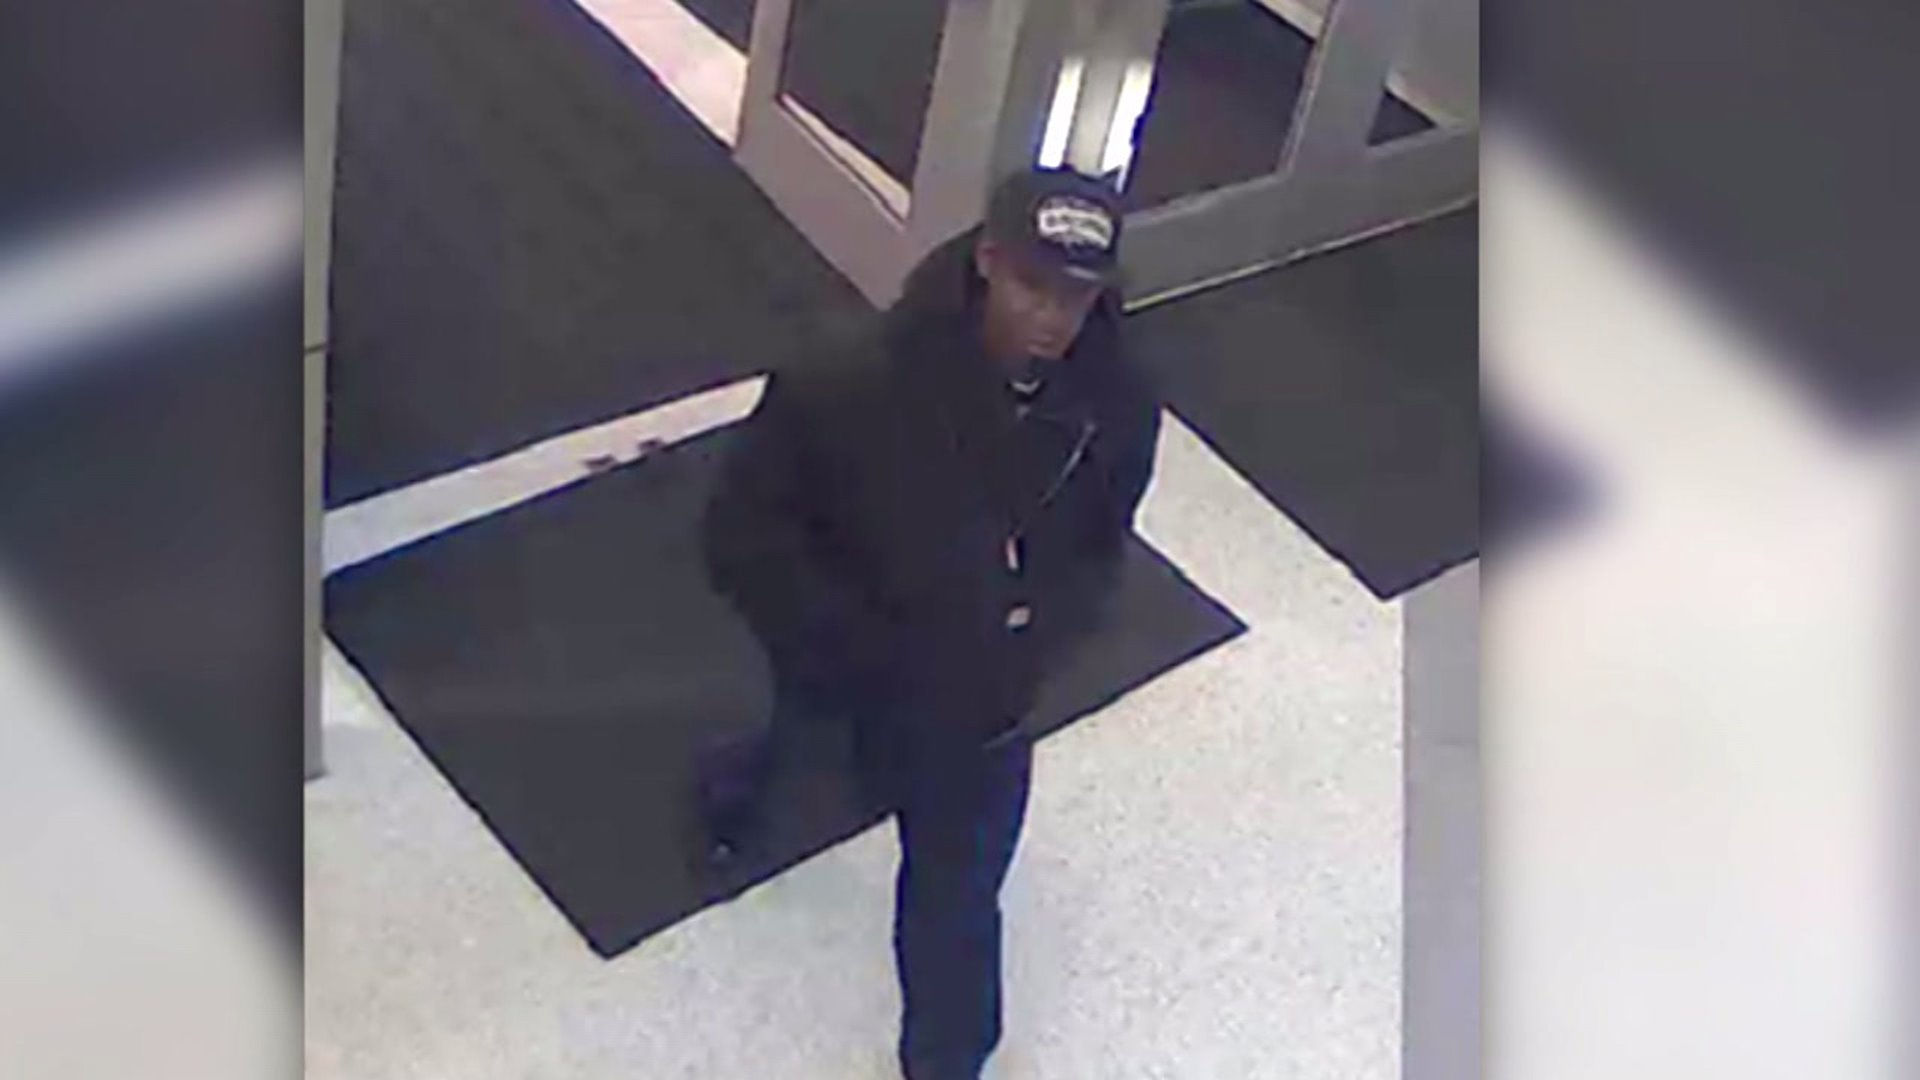 Police say they'd like to speak with this man regarding the fatal shooting of a San Antonio police detective.